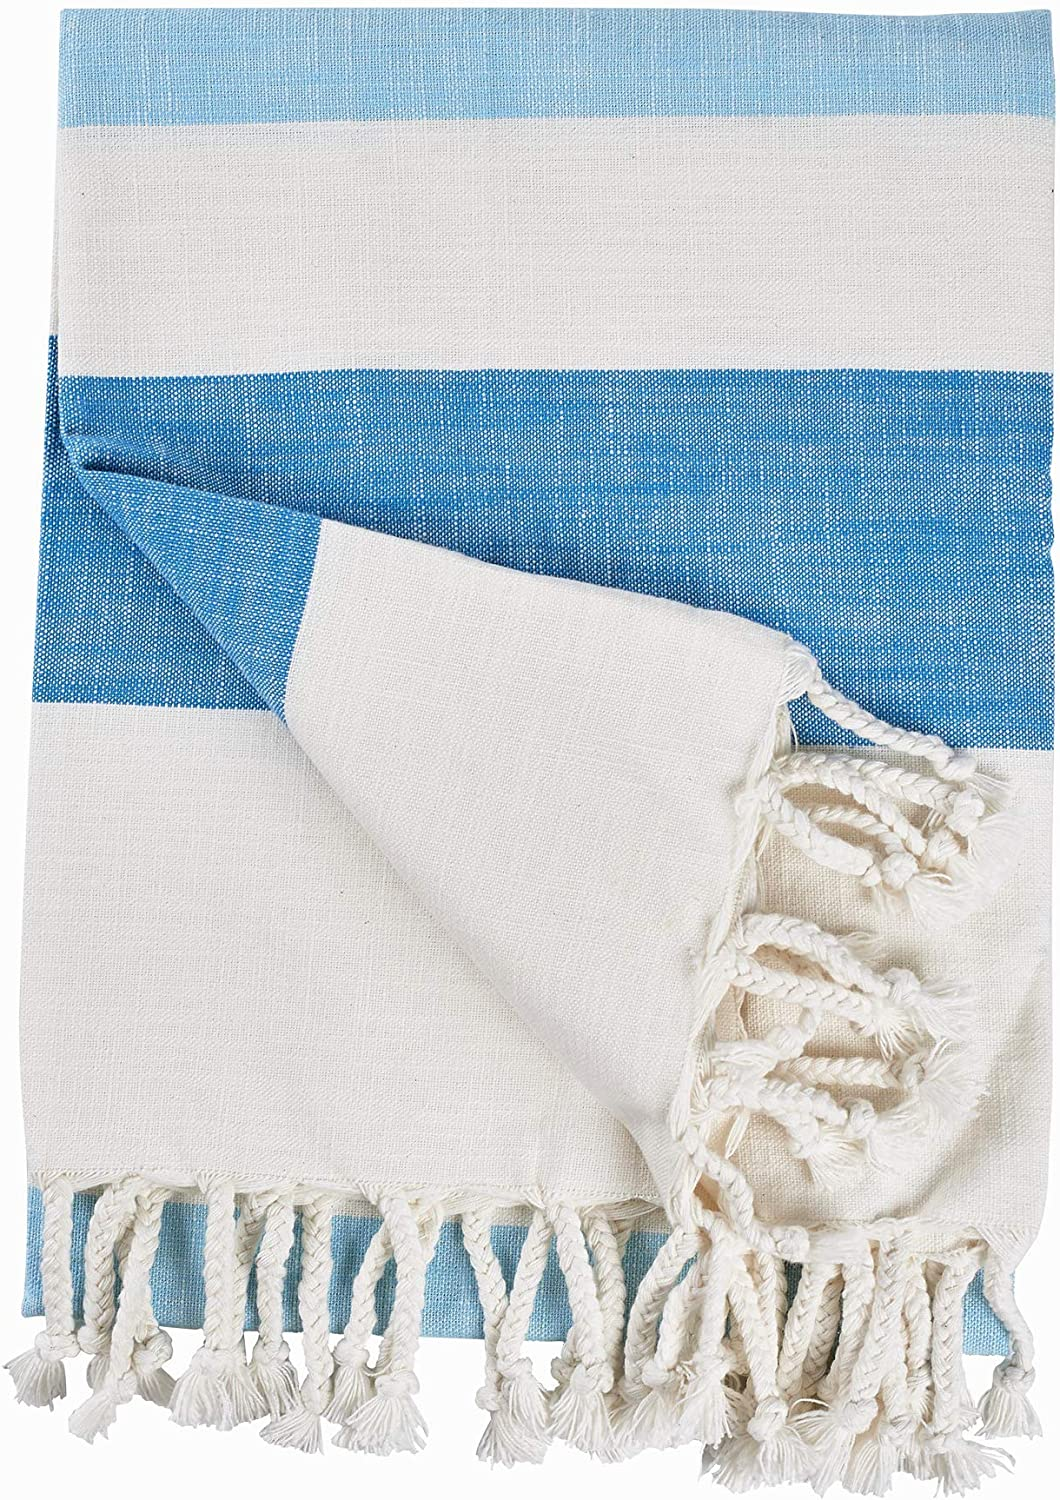 Motini 100 Cotton Striped Throw Blankets Plain Woven Slub Fabric With Decorative Fringe Tassels For Sofa Couch 50 X 60 Blue And White Kitchen Dining